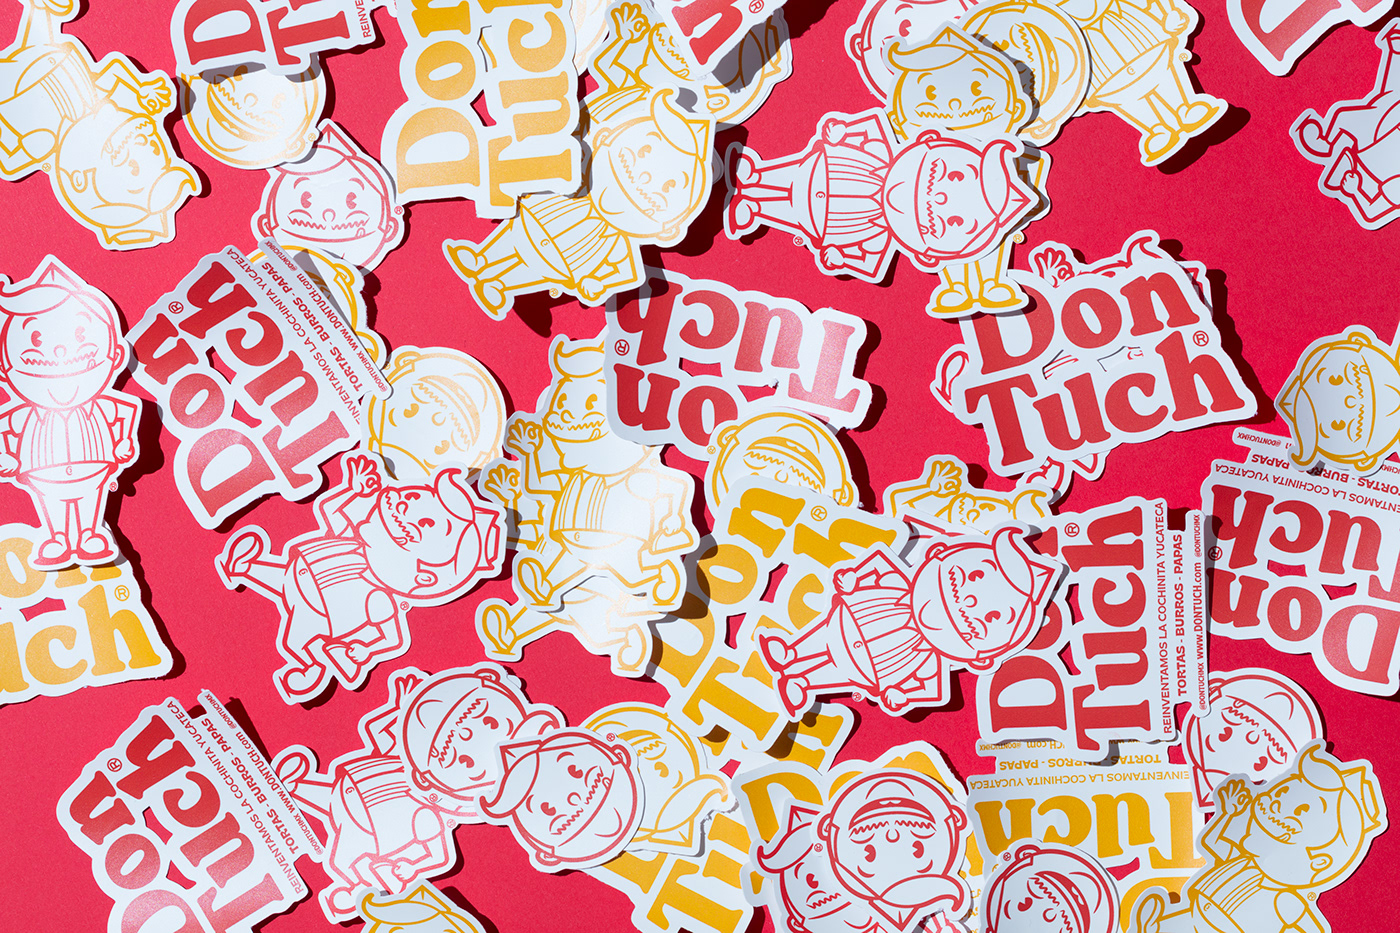 branding ,fastfood,Food ,graphicdesign,ILLUSTRATION ,Mexican,Packaging,restaurant,stationary,stickers